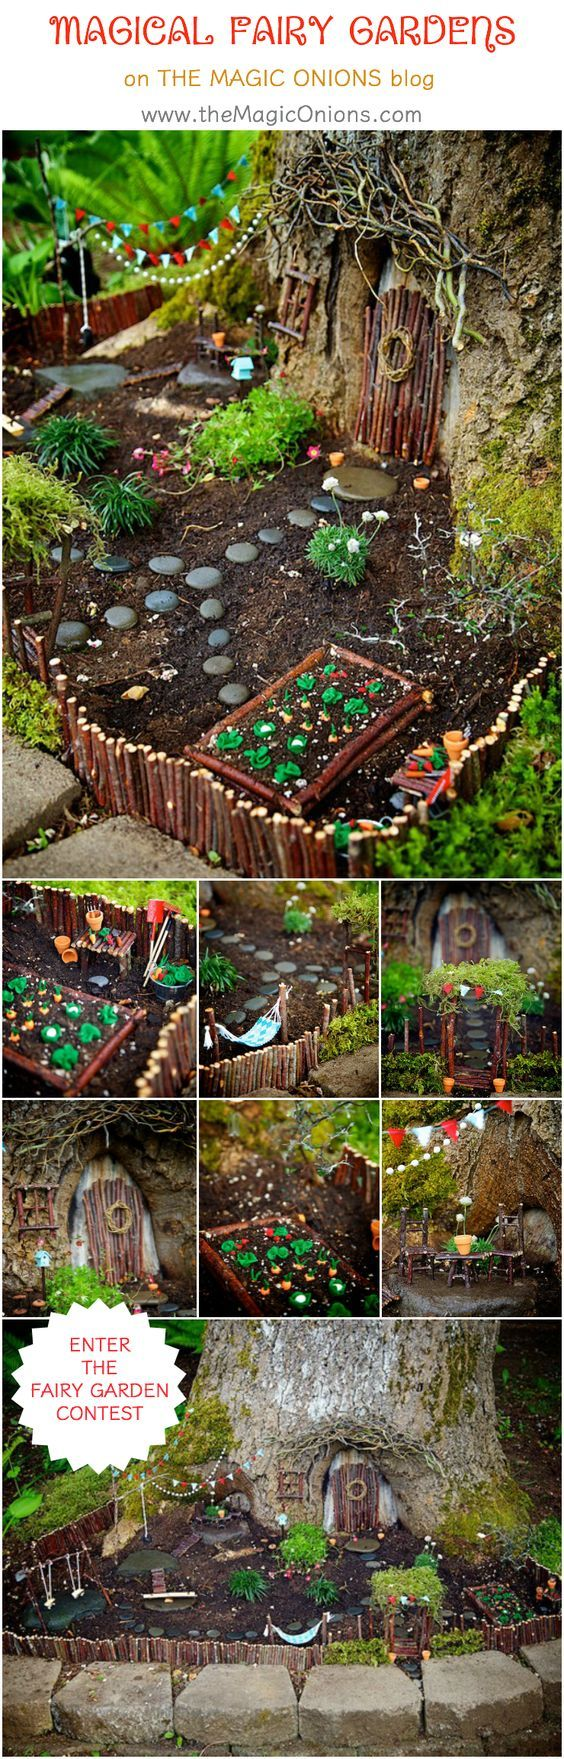 Come and see the most MAGICAL fairy gardens on The Magic Onions blog ...